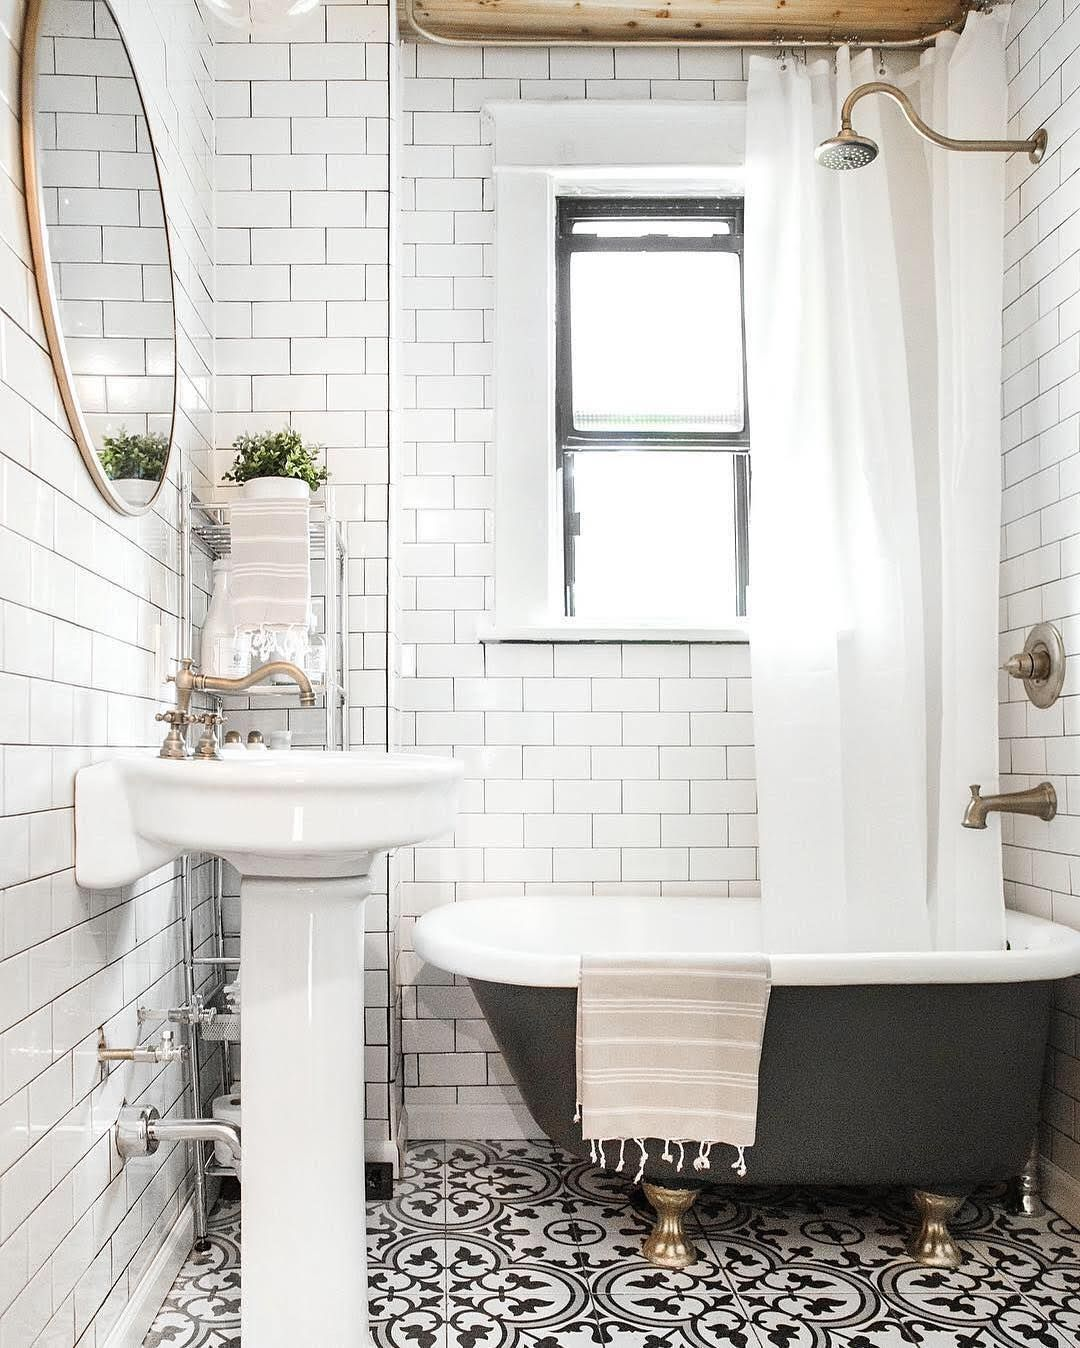 Freshen Up Your Bathroom In With This Mixed Tile Trend - Small bathroom remodel with clawfoot tub